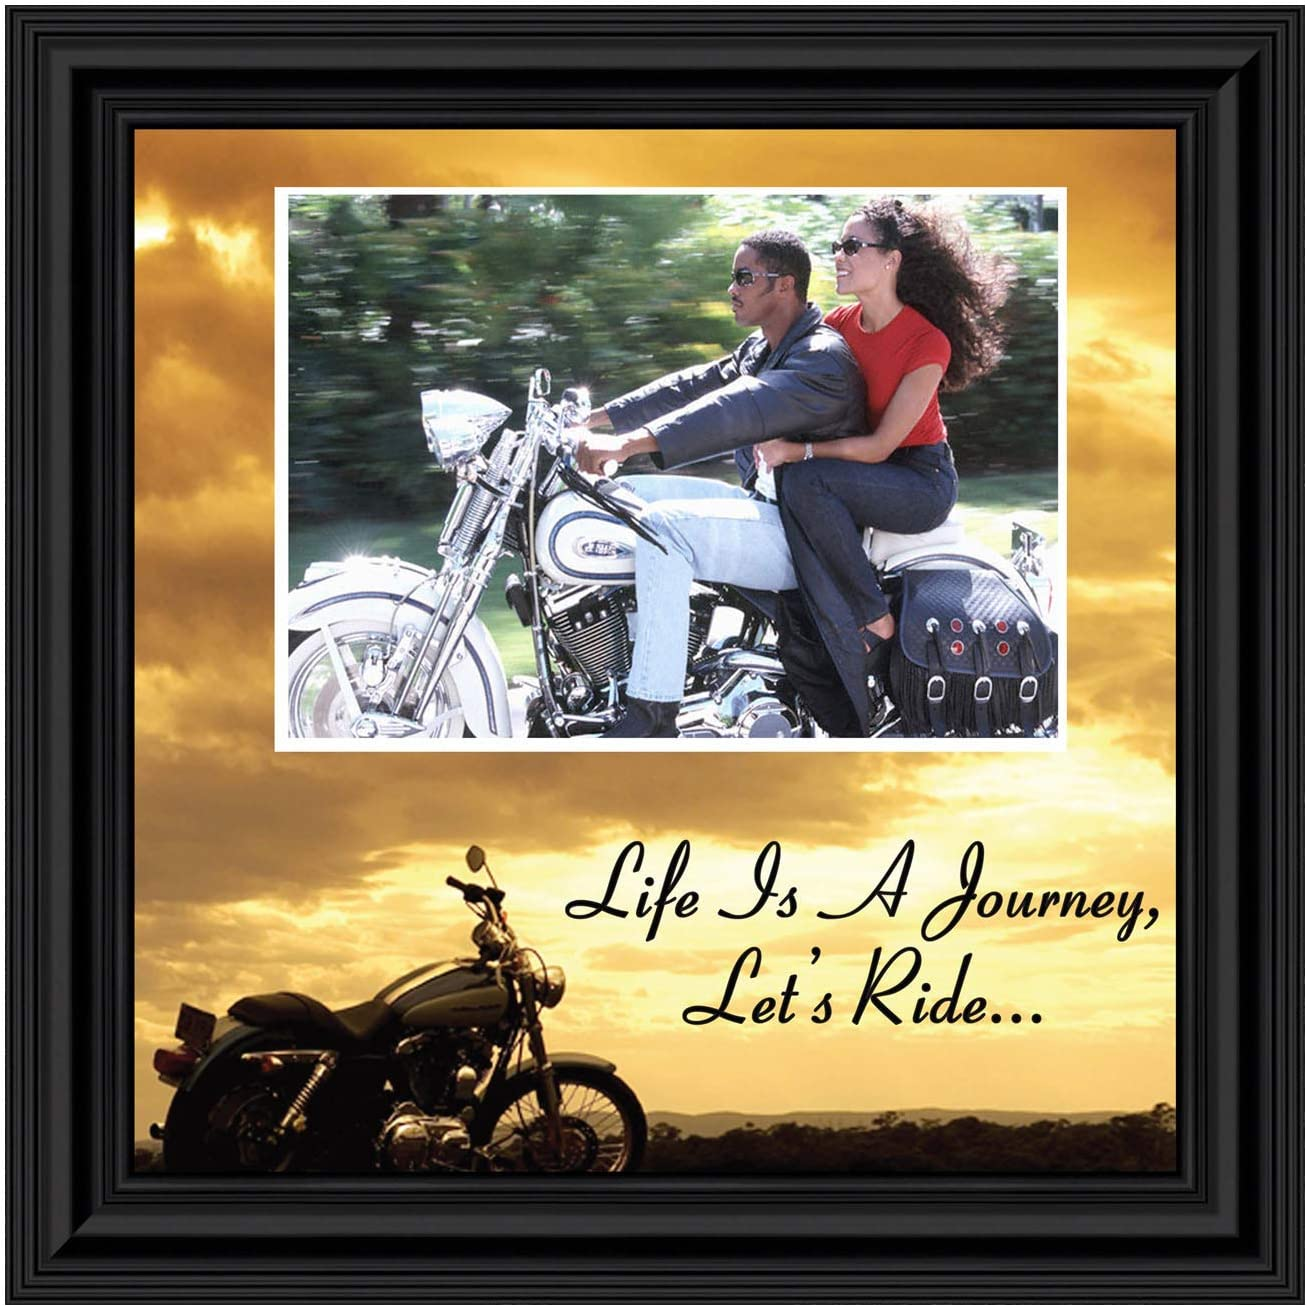 Amazon Com Classic Harley Picture Frame Harley Davidson Gifts For Men Harley Davidson Gifts For Women Harley Davidson Wedding Gifts Biker Motorcycle Accessories For Men Unique Motorcycle Wall Decor 9764b Decorative